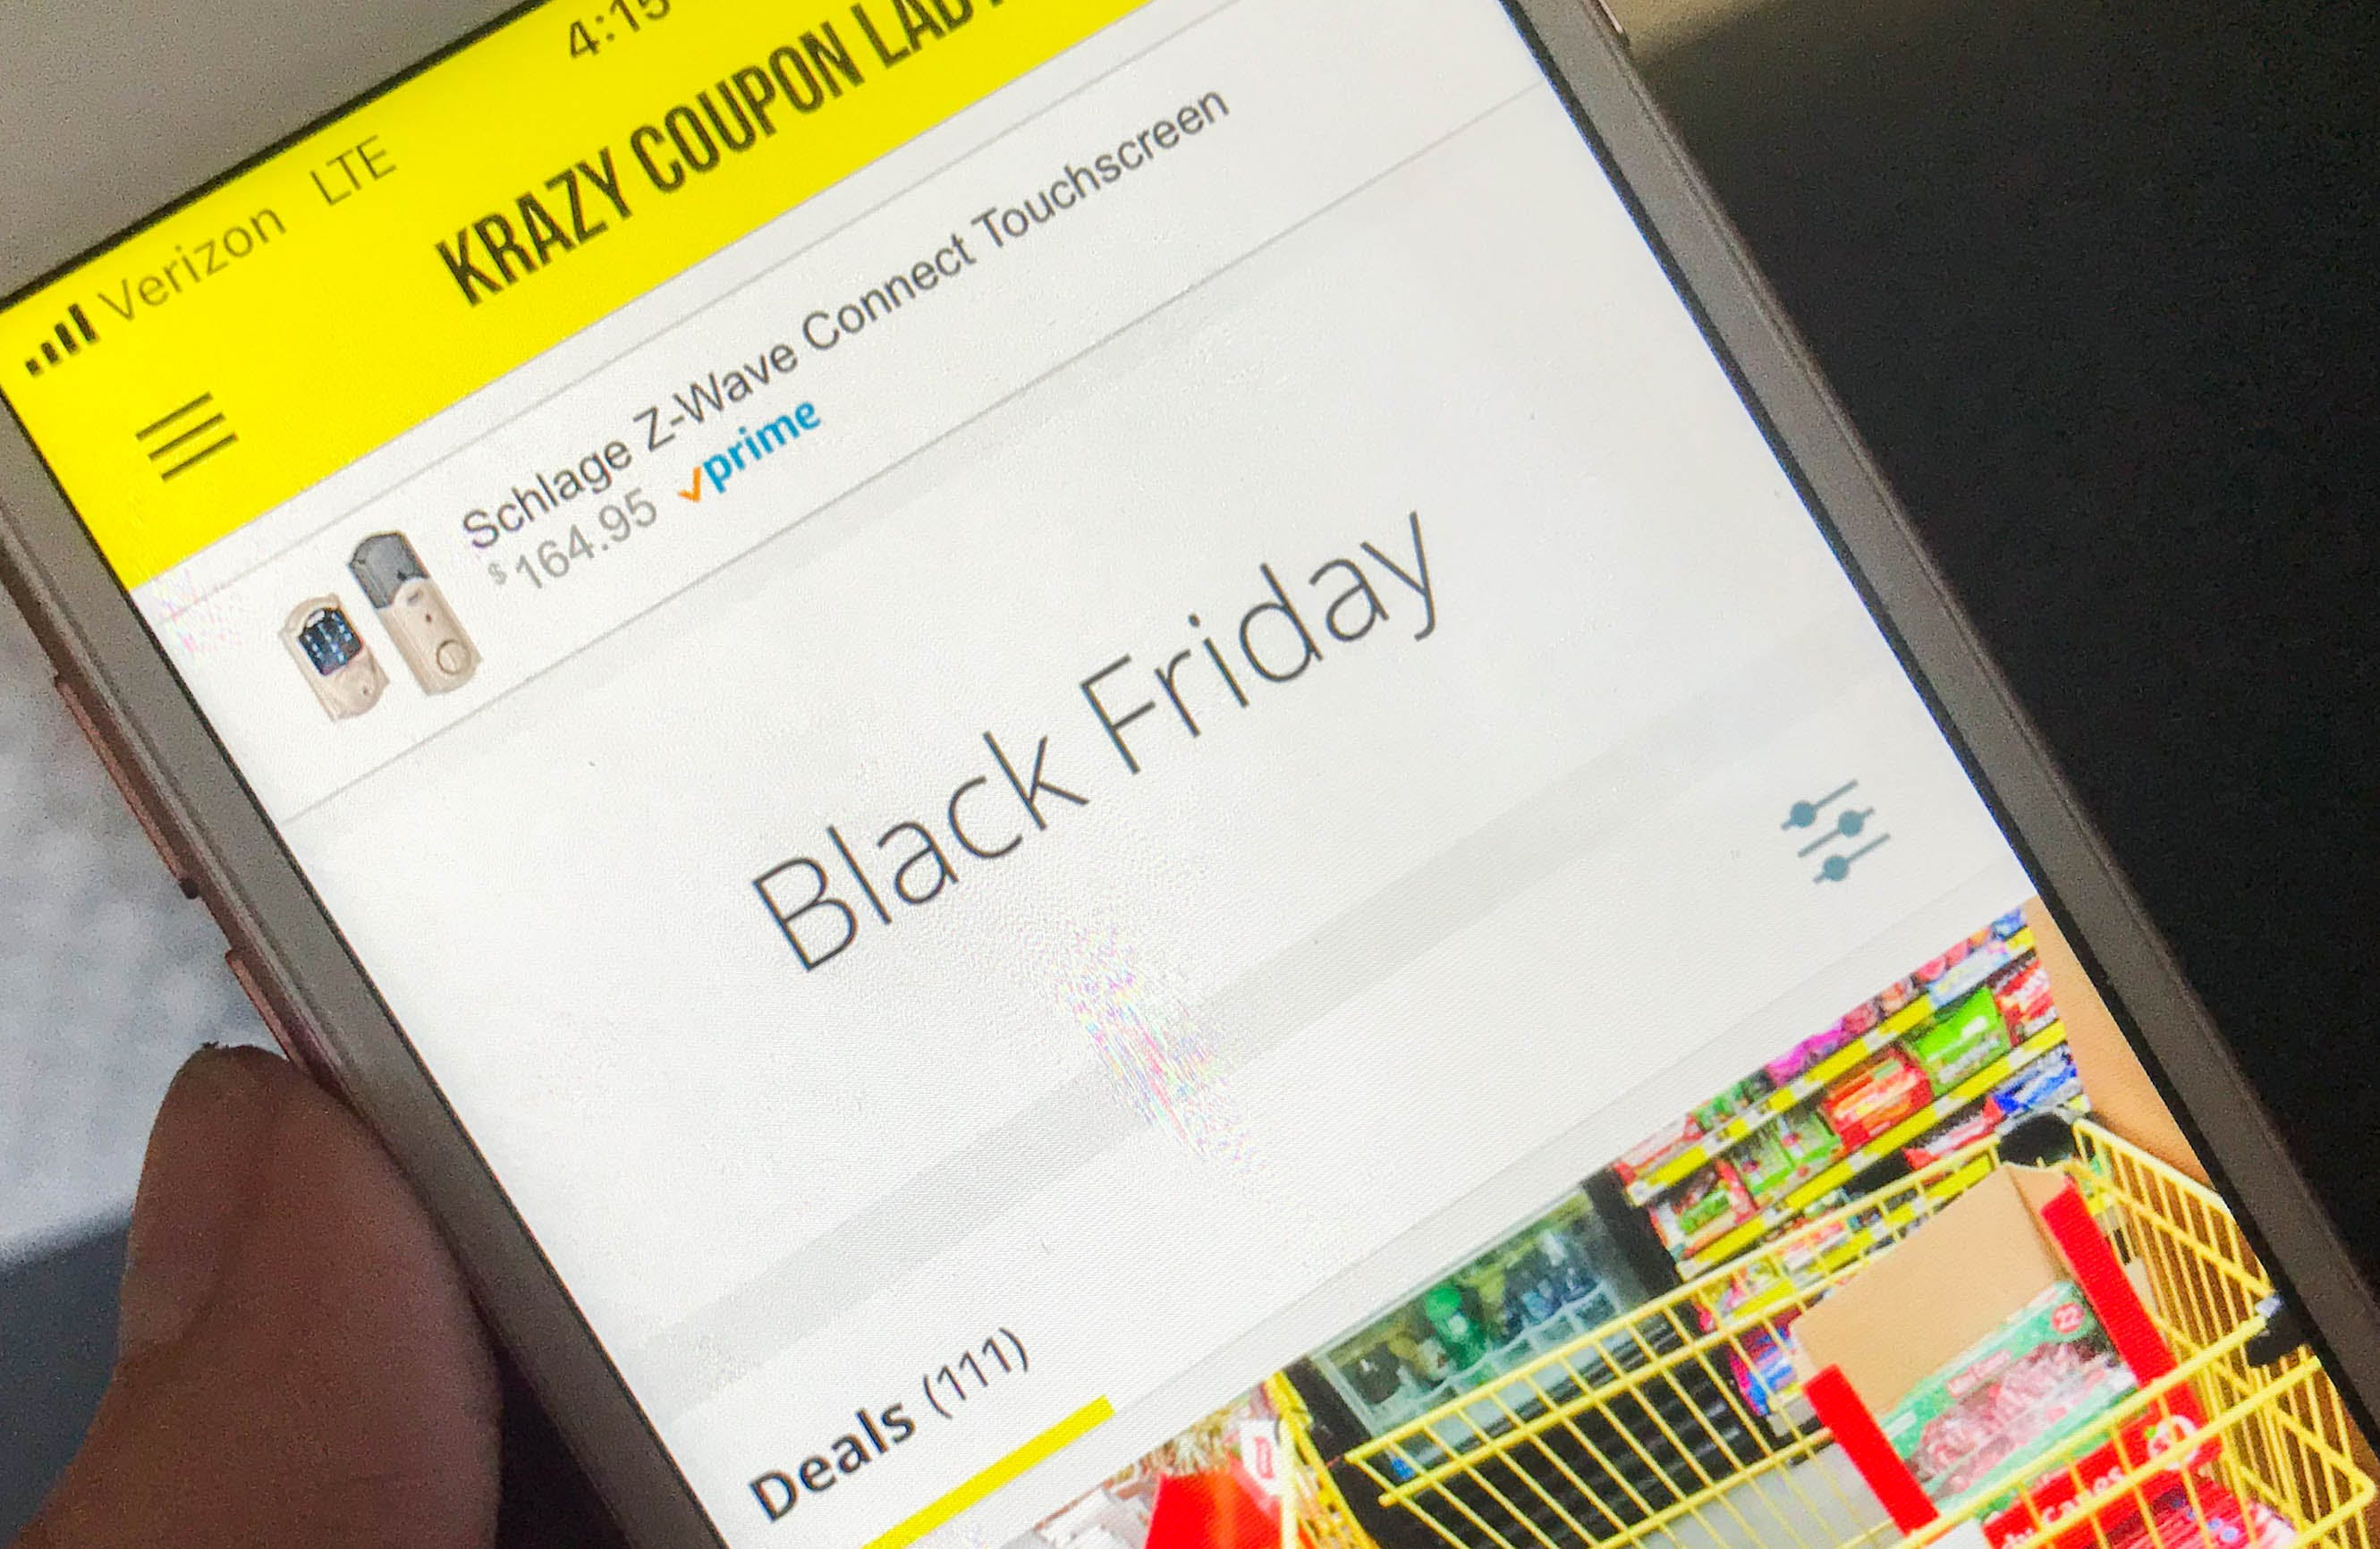 14 Black Friday 2020 Shopping Tips For Cvs Walgreens Rite Aid The Krazy Coupon Lady